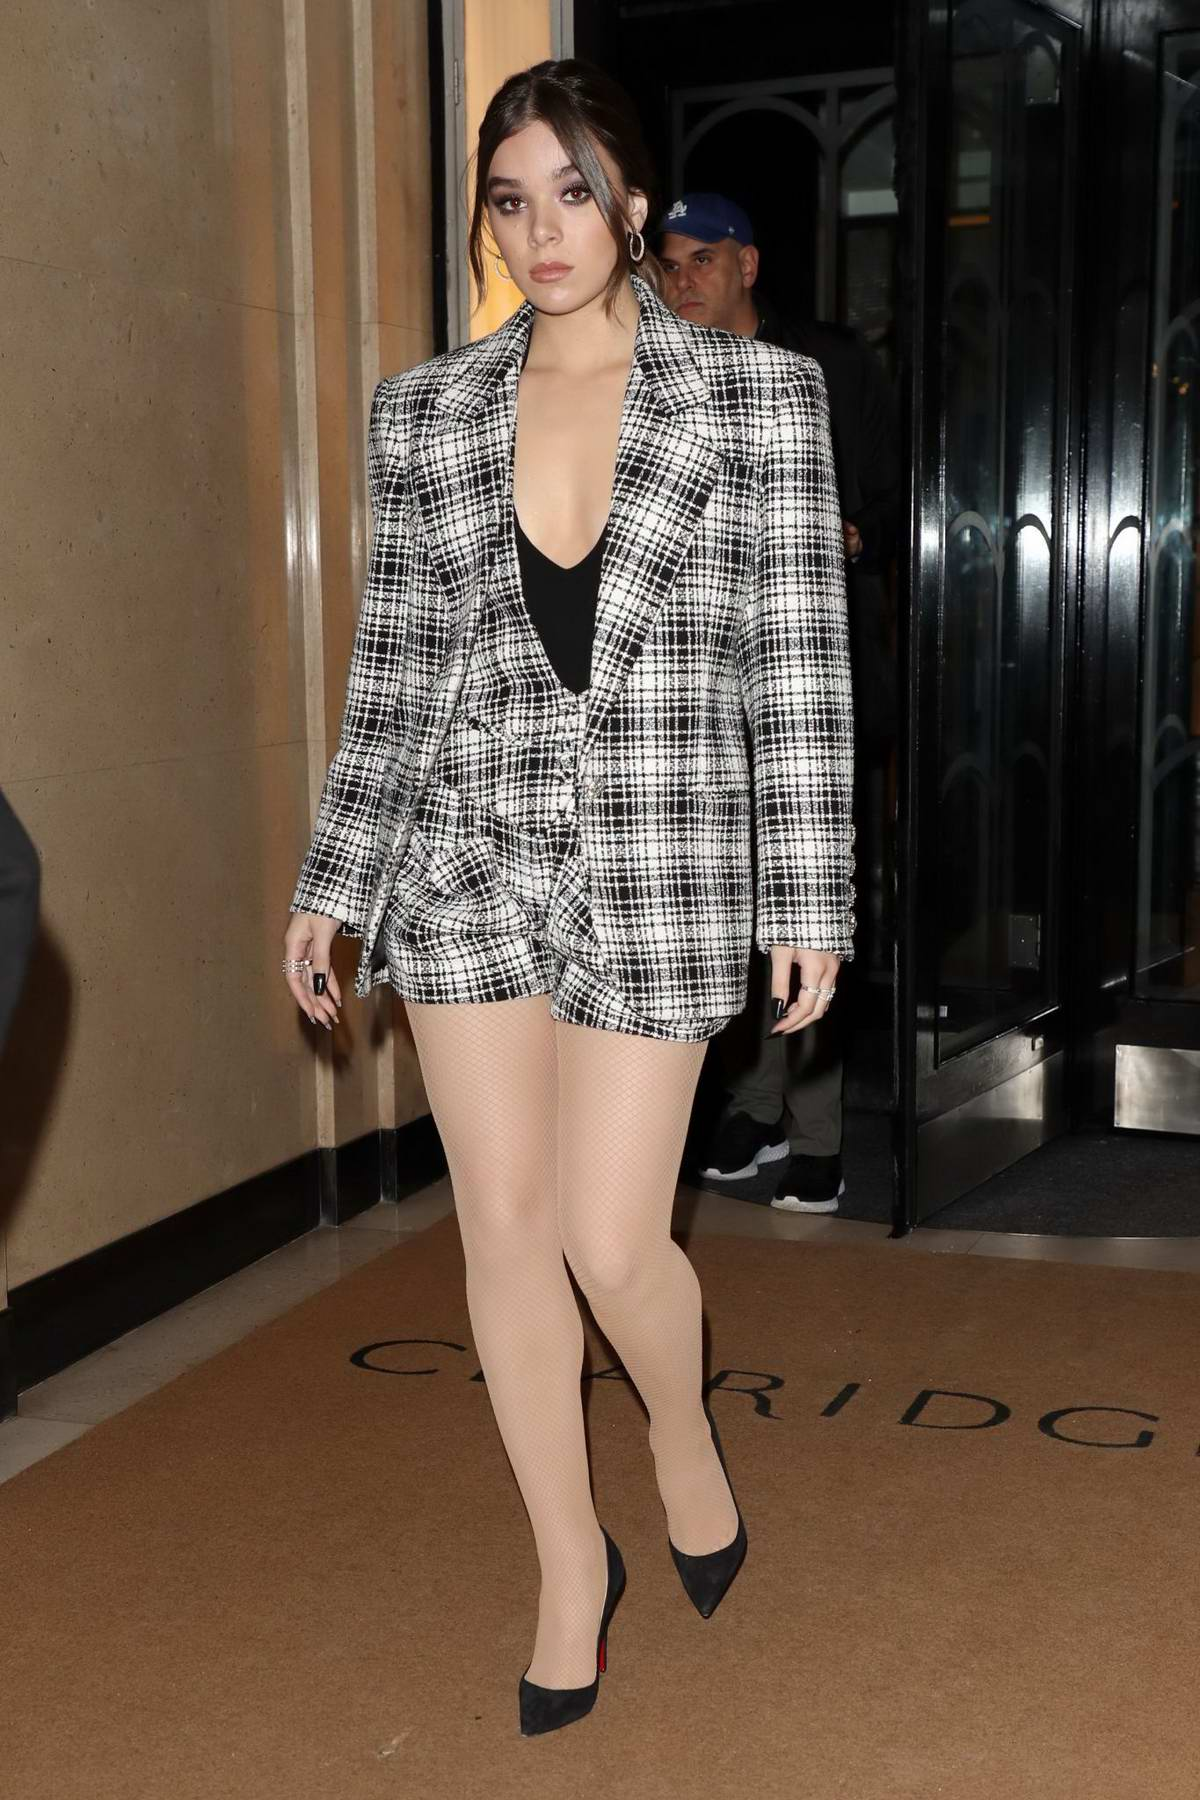 Hailee Steinfeld looks cute in plaid as she leaves Claridge's Hotel ahead of her BBC One Show appearance in London, UK